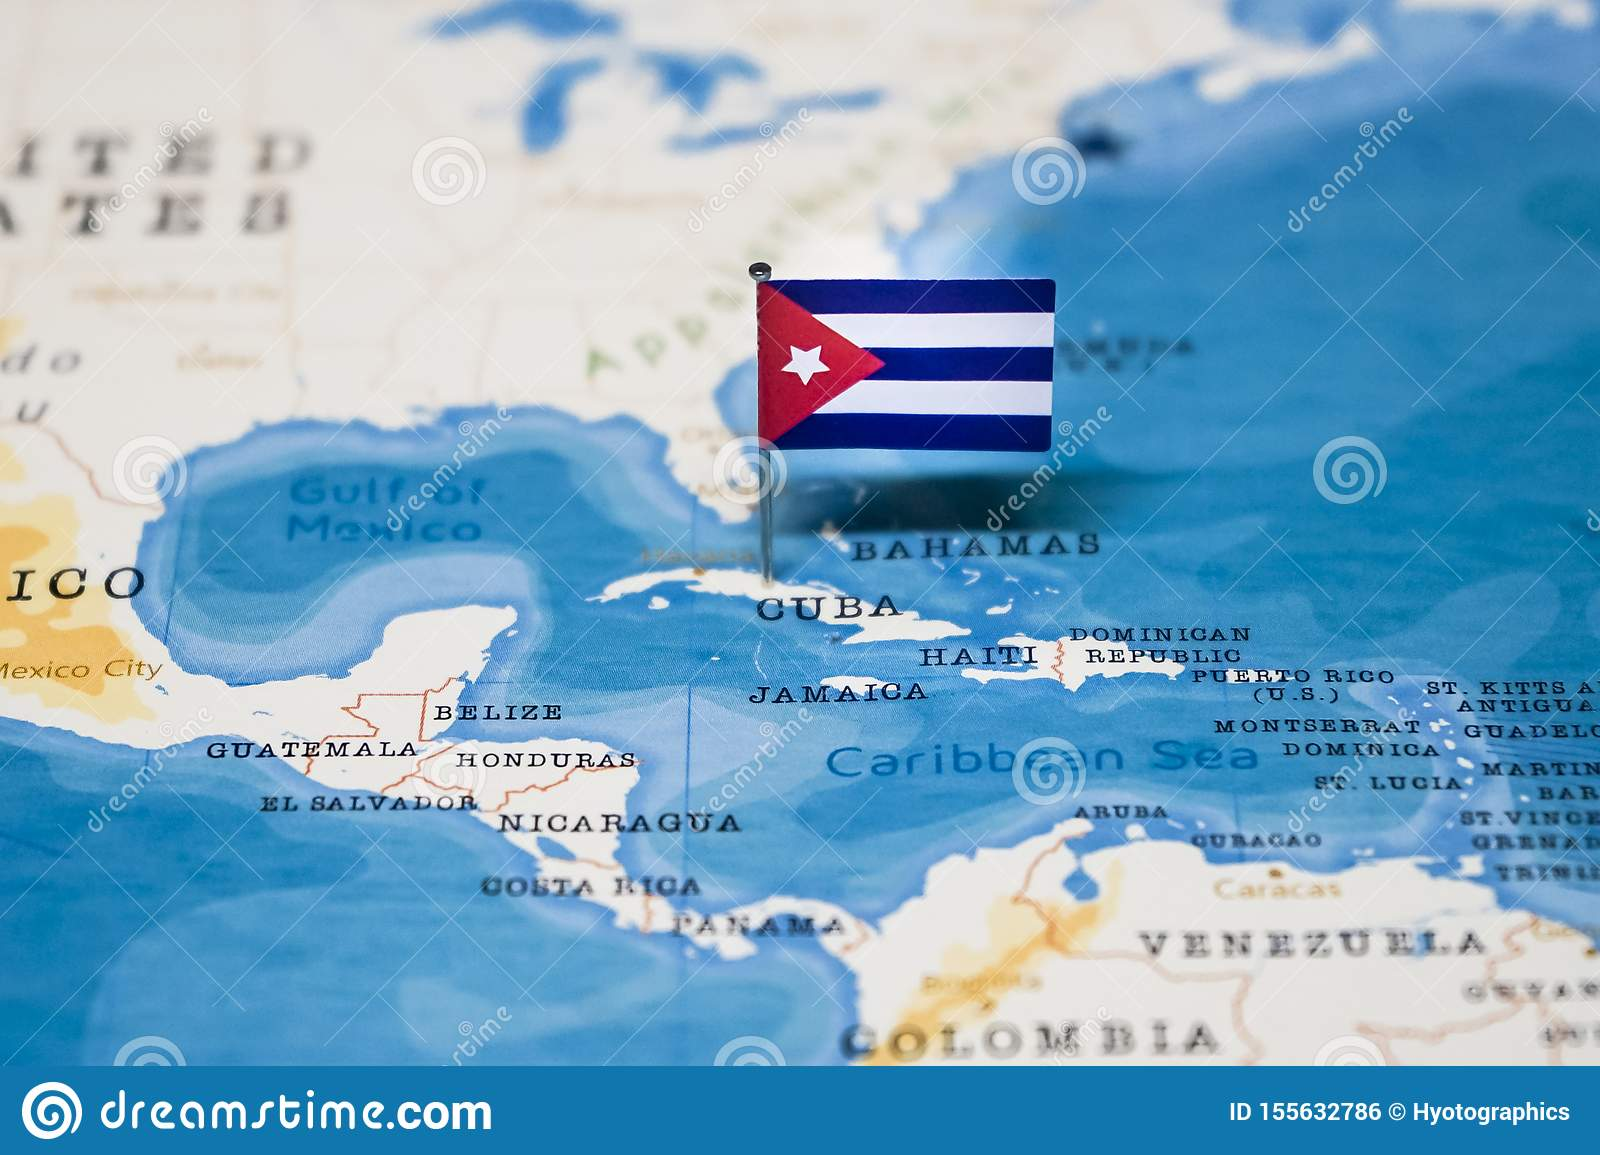 The Flag Of Cuba In The World Map Stock Photo - Image of ...